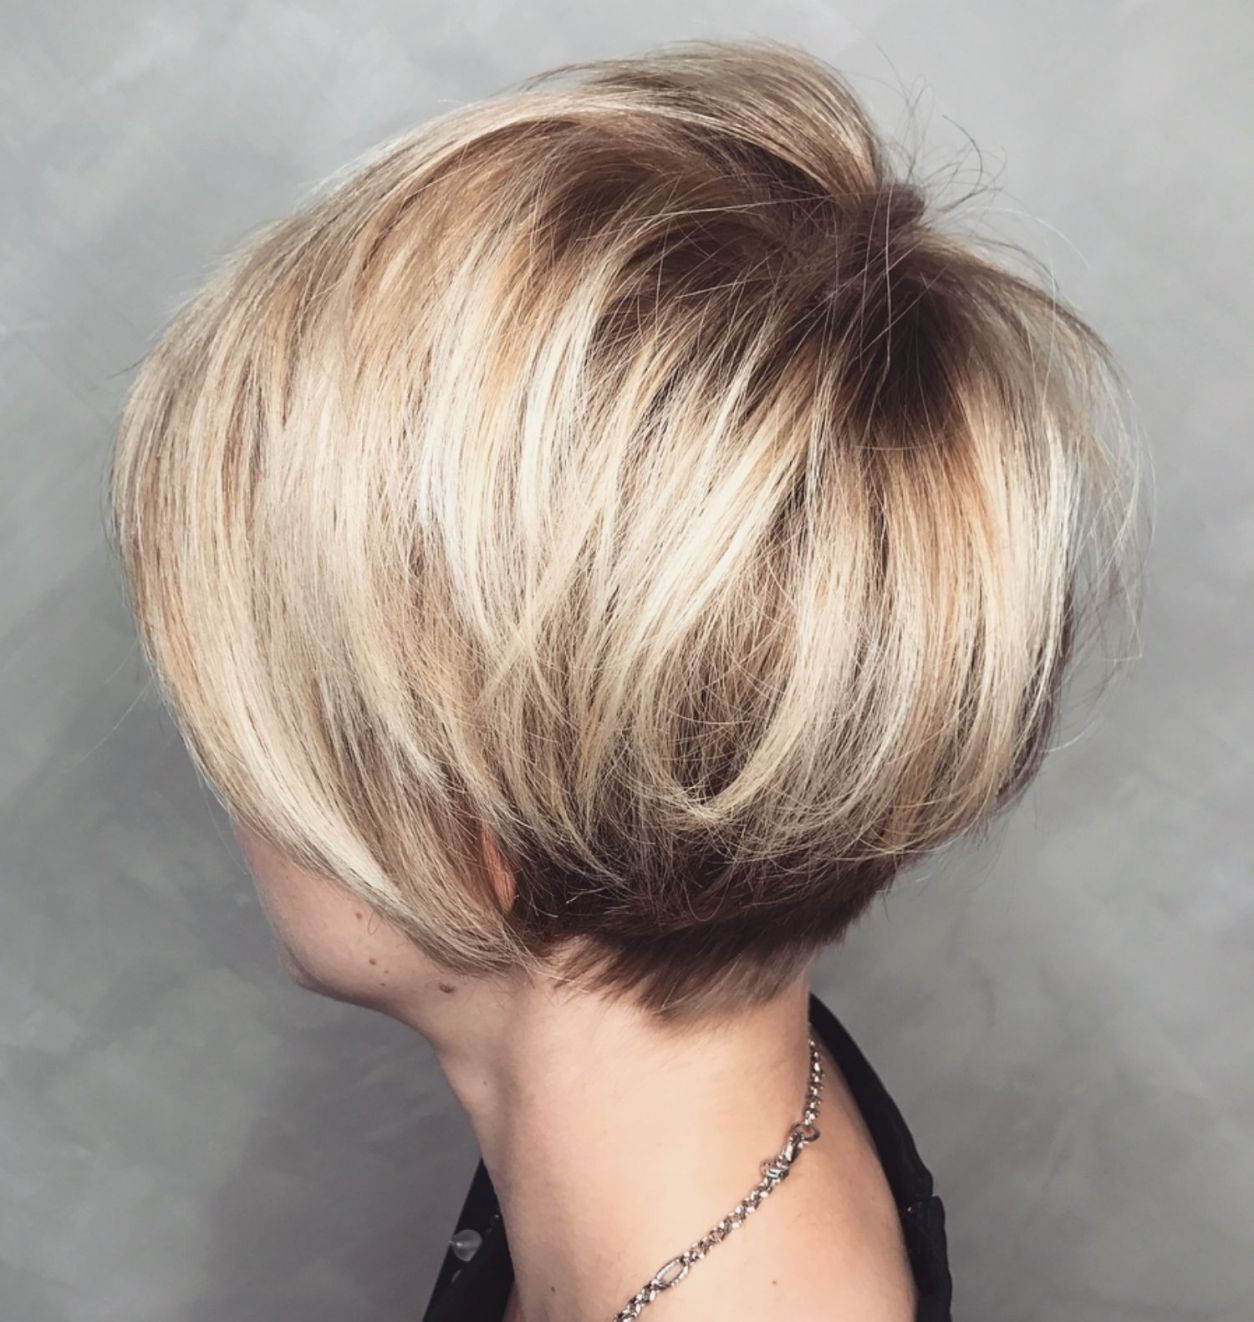 100 Mind Blowing Short Hairstyles For Fine Hair Wlosy W